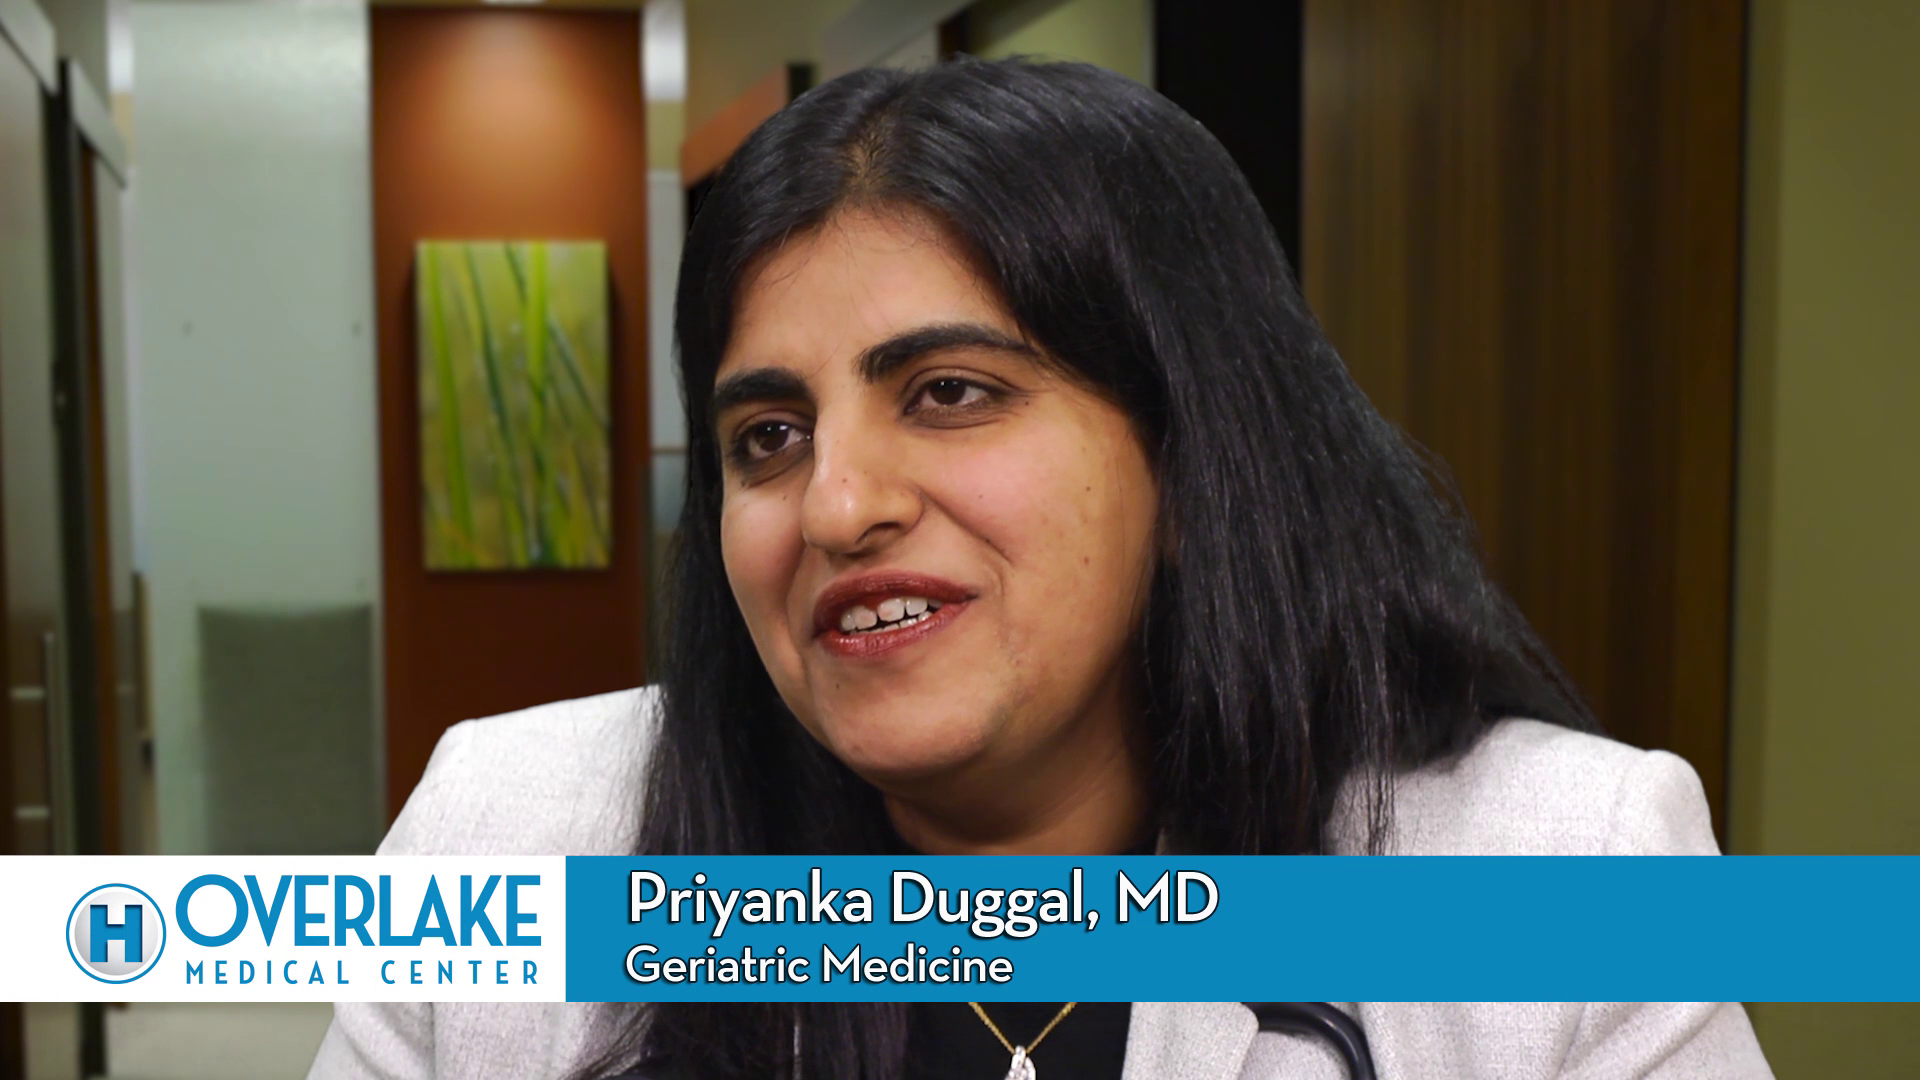 Dr. Duggal talks about her practice